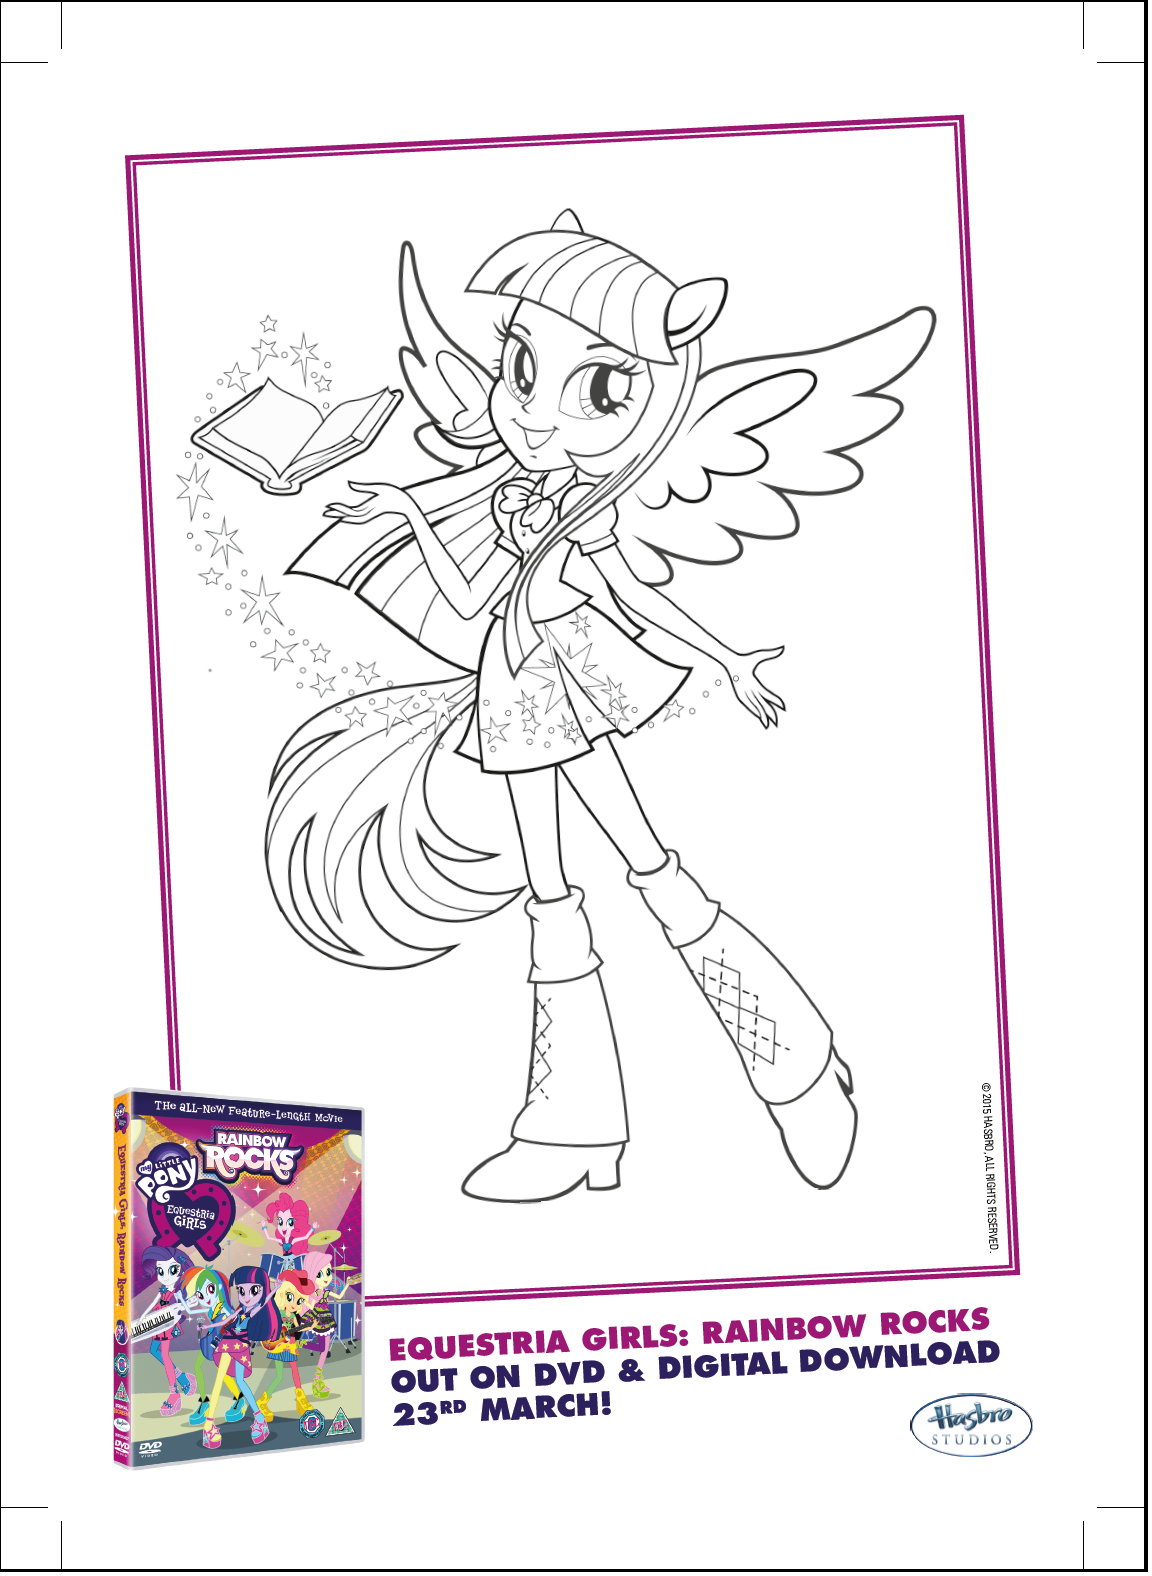 twilight sparkle rainbow rocks coloring pagepng - Twilight Sparkle Coloring Pages